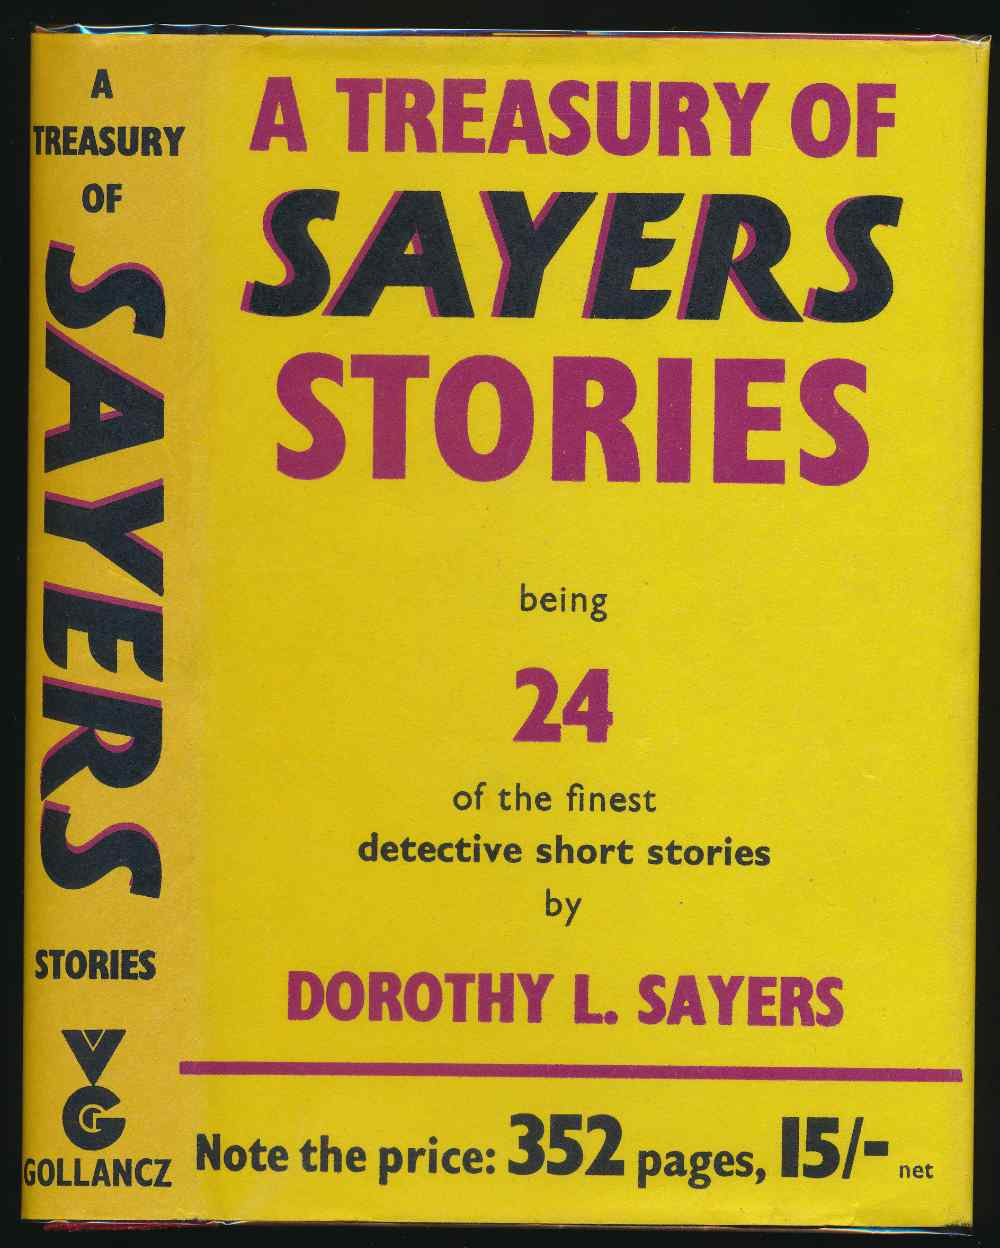 A treasury of Sayer's stories